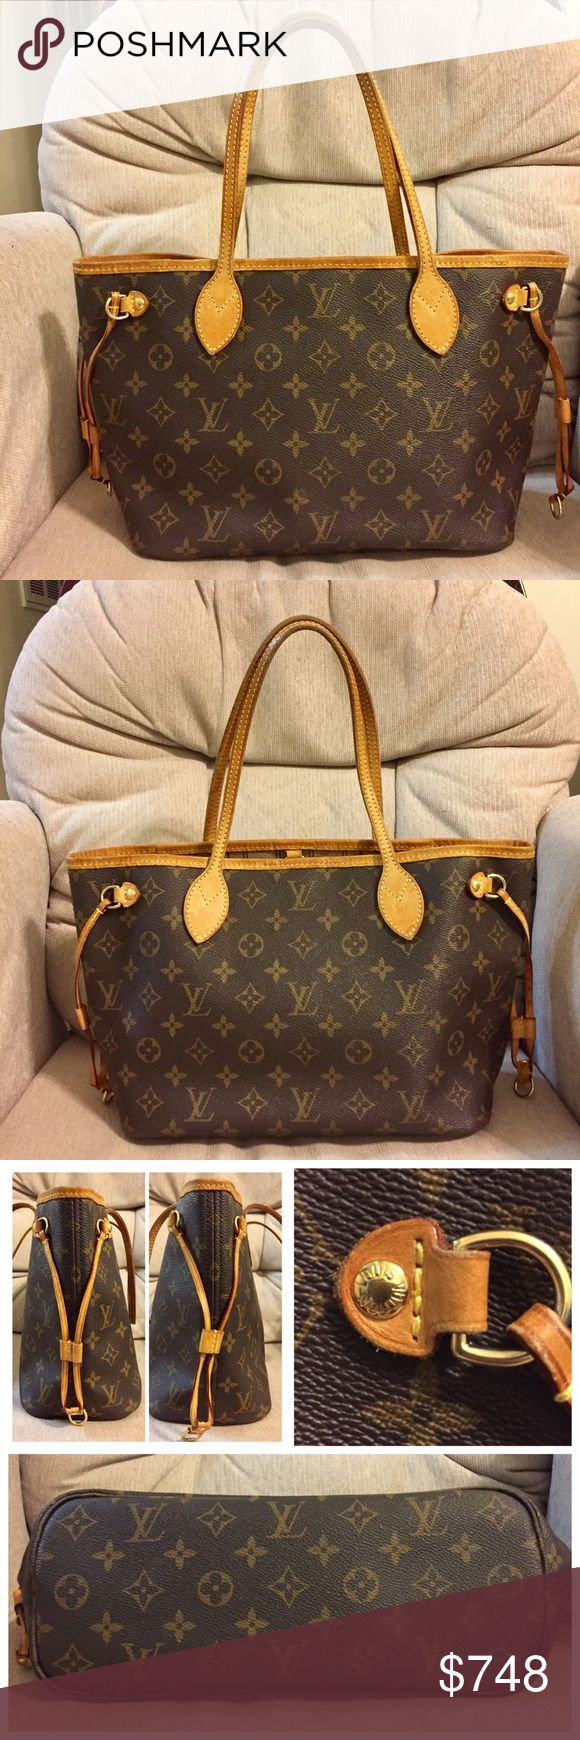 """Louis Vuitton Neverfull PM 100% Authentic Made in France Date Code: VI 2079 Size: w13"""" h10.5"""" d6.5""""  Monogram leather is in good condition. No scratch/tears. Vachetta leather and handles have developed a honey patina-show darkening, wear, & creases, scratches & water marks. Hardwares have NO tarnish. Lining has some dirt, minor ink marks.Pocket has few ink marks but no peeling. Zipper works. Faint storage odor. NO dust bag. FREE NON LV dust bag. Poshmark will authenticate. ❌ TRADE. Louis…"""